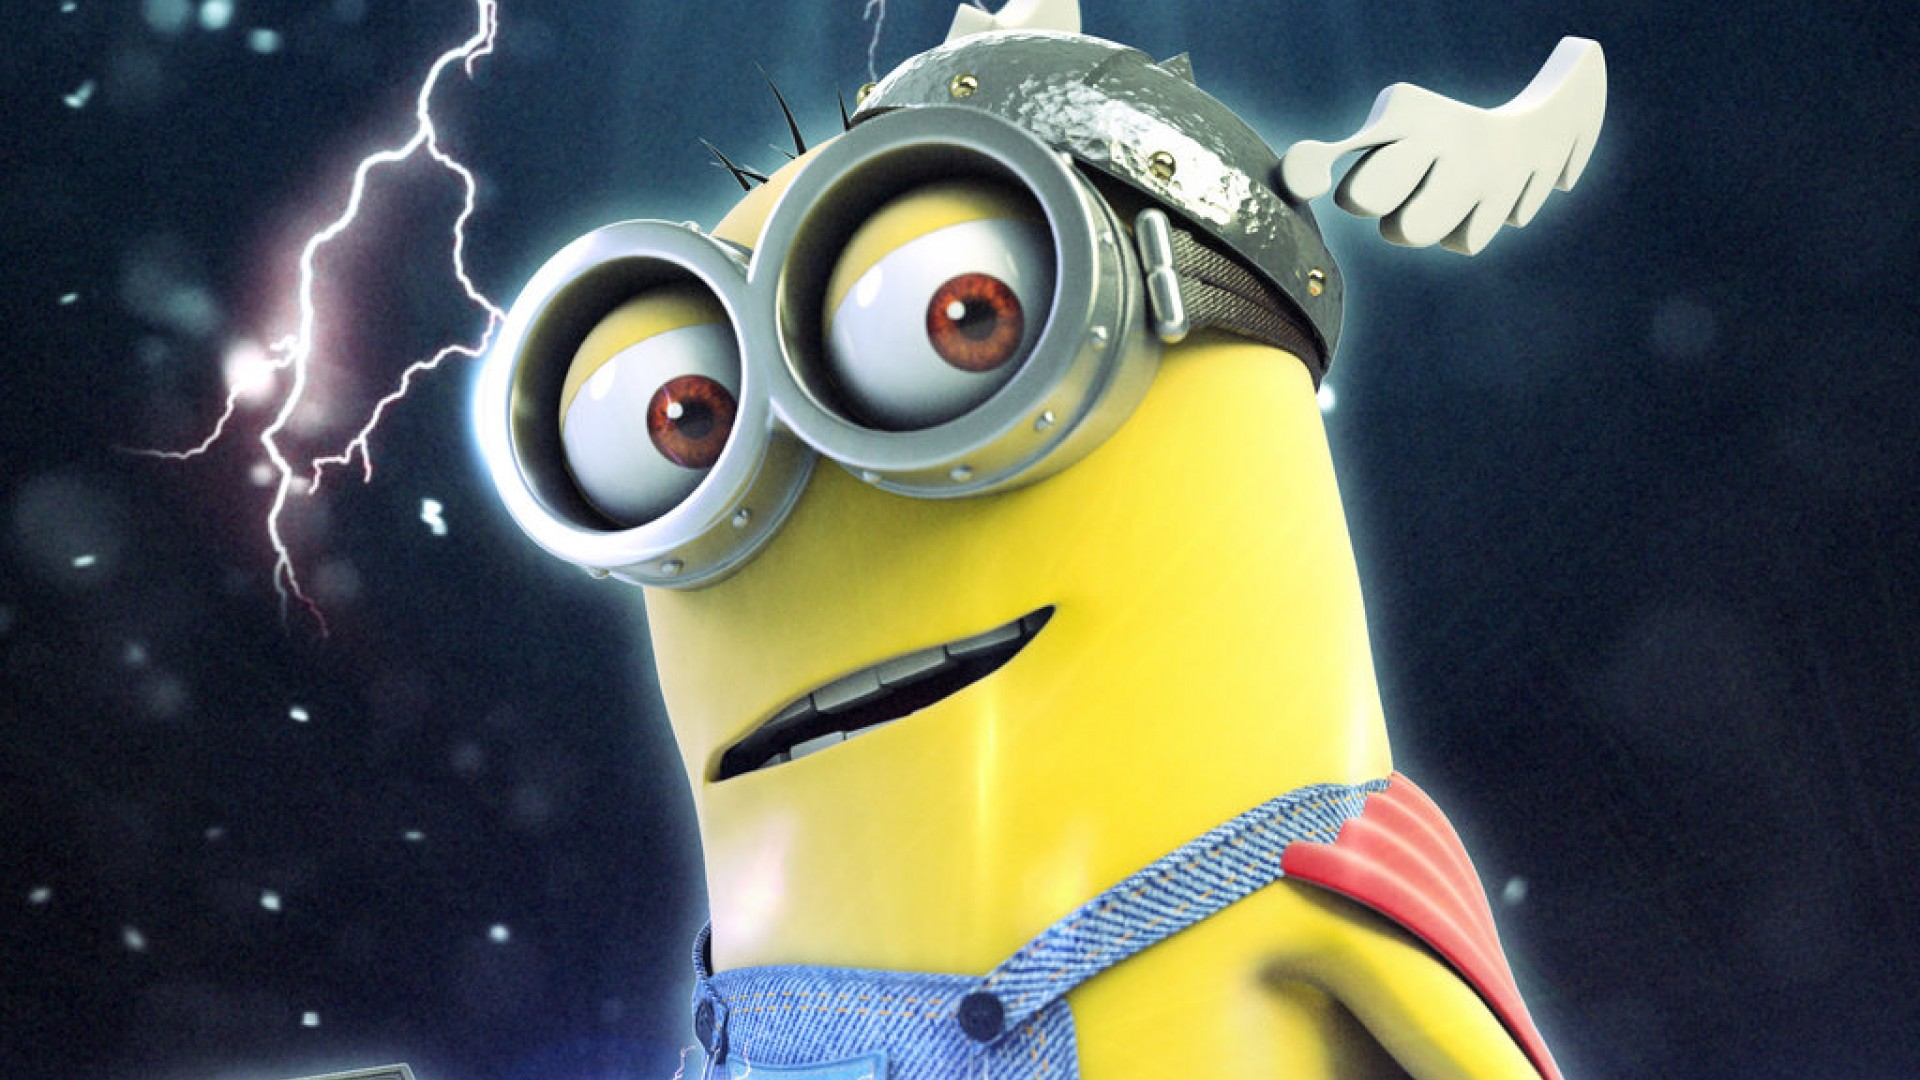 30+ Minions Wallpaper Hd 1080P Free Download PNG